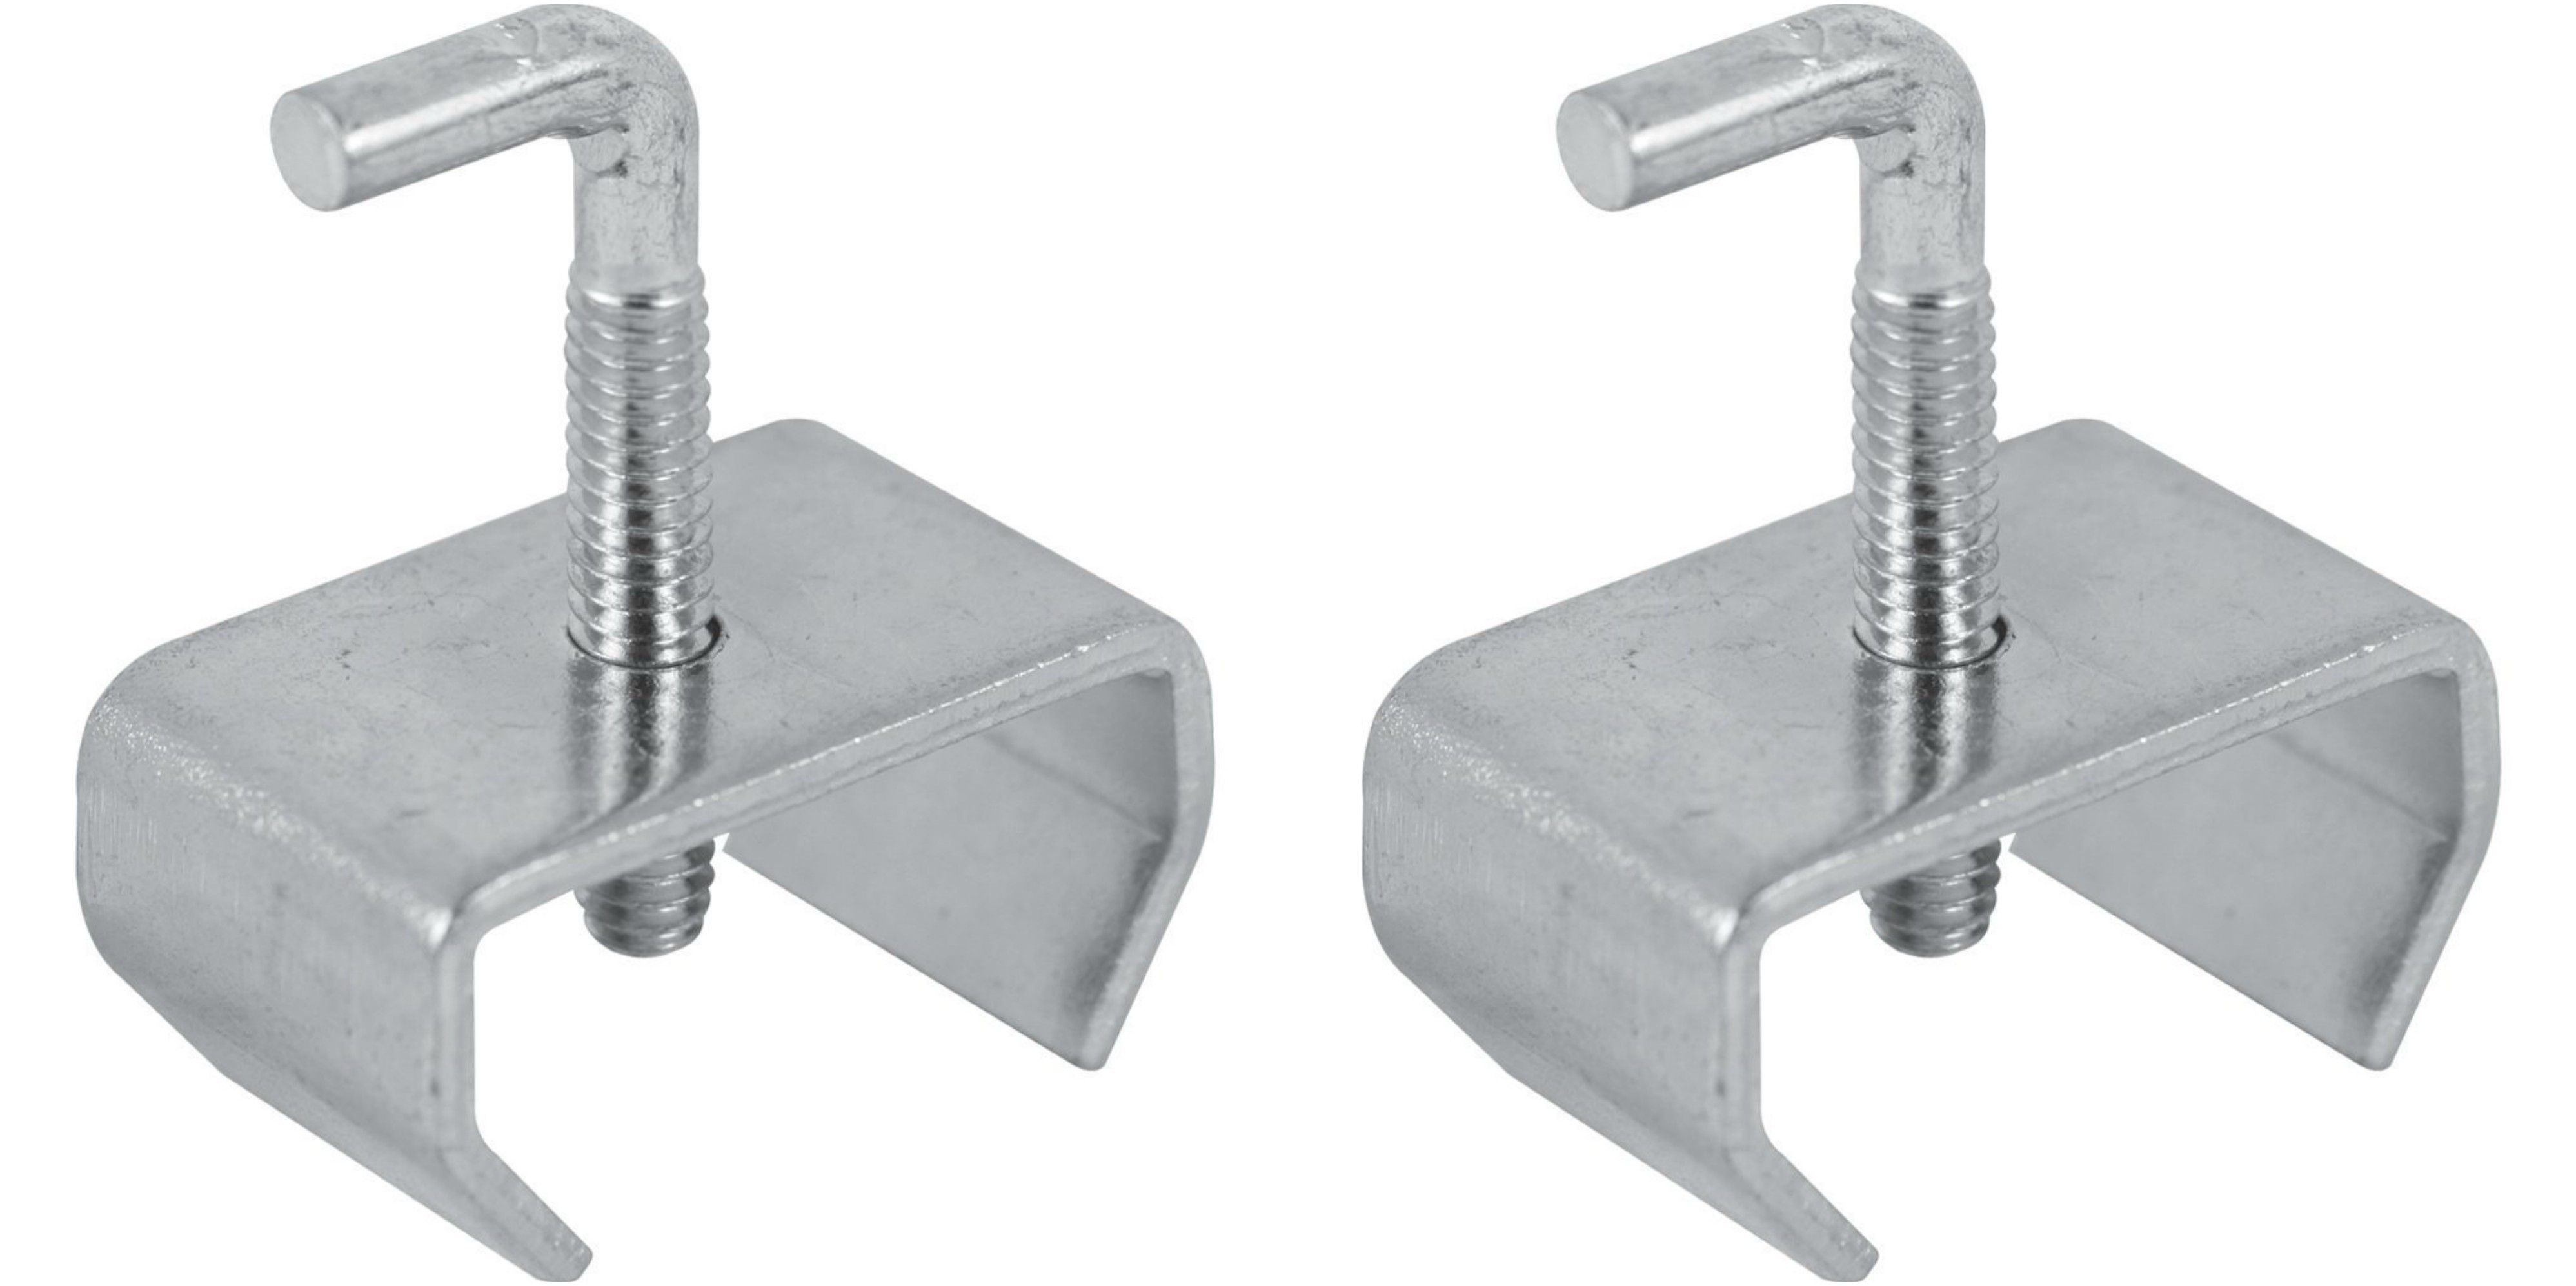 Bed Frame Rail Clamps For 1-1/4 Rails (Set Of Two) | Products ...